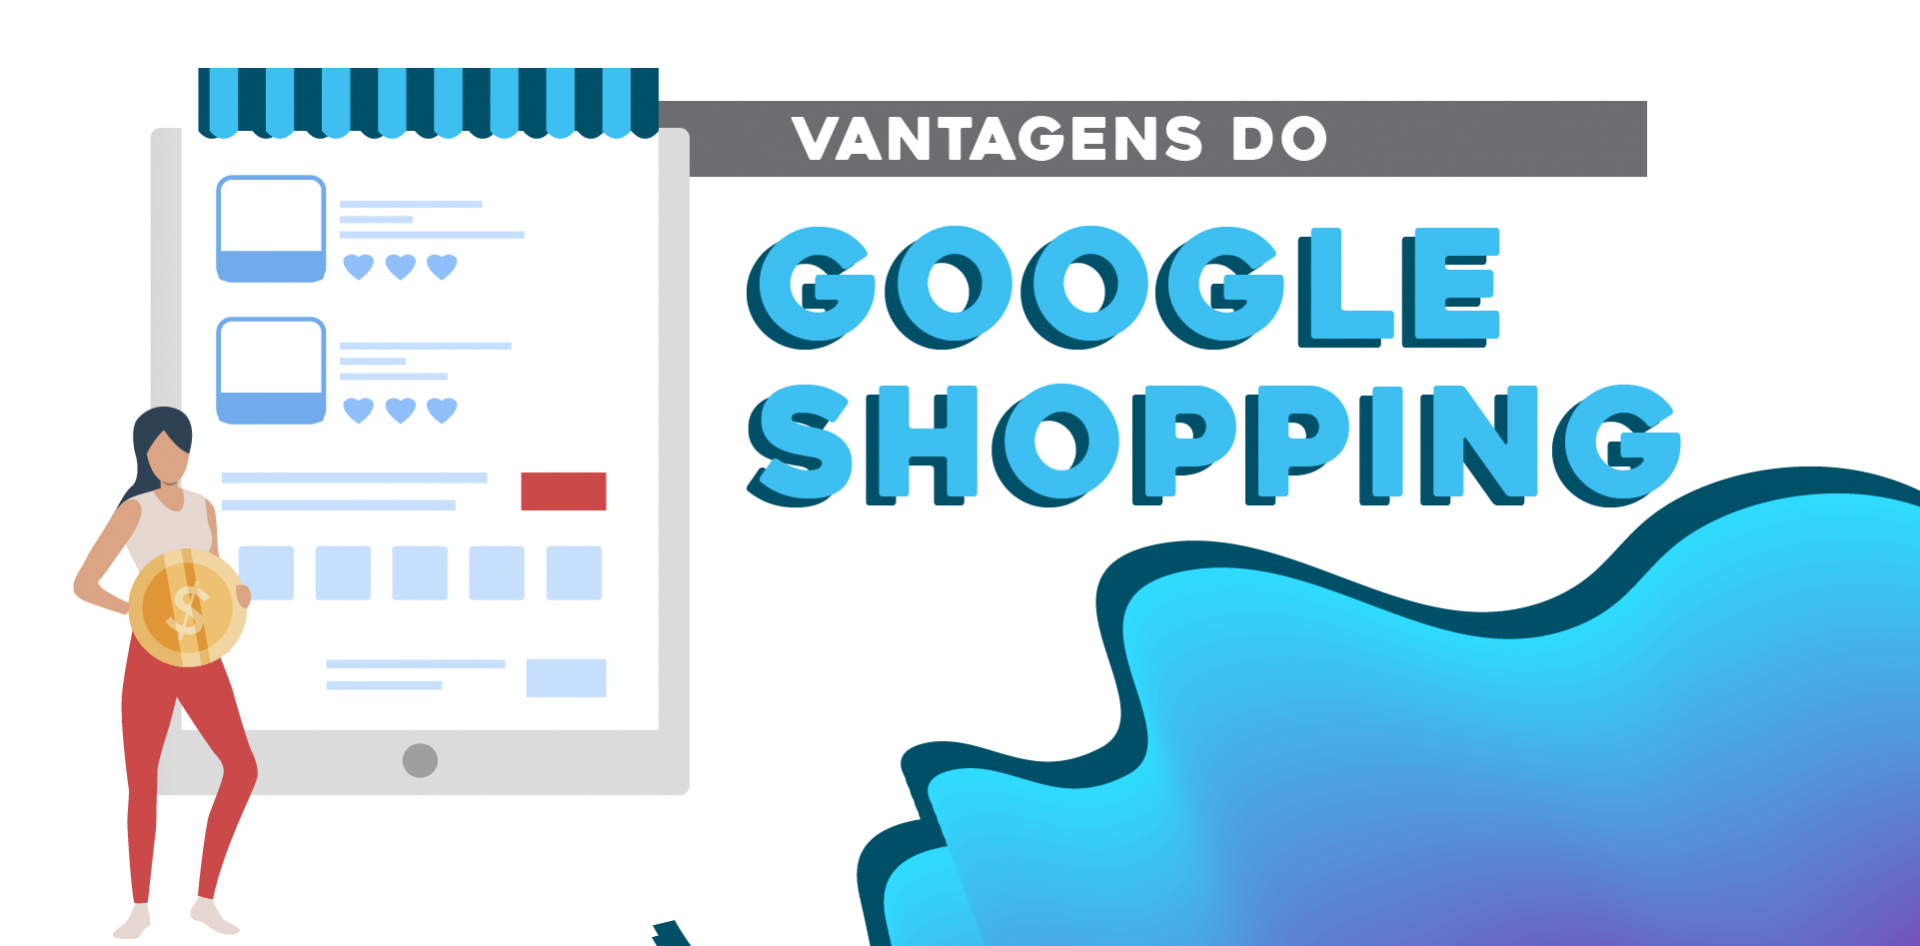 VENDER MAIS COM GOOGLE SHOPPING!